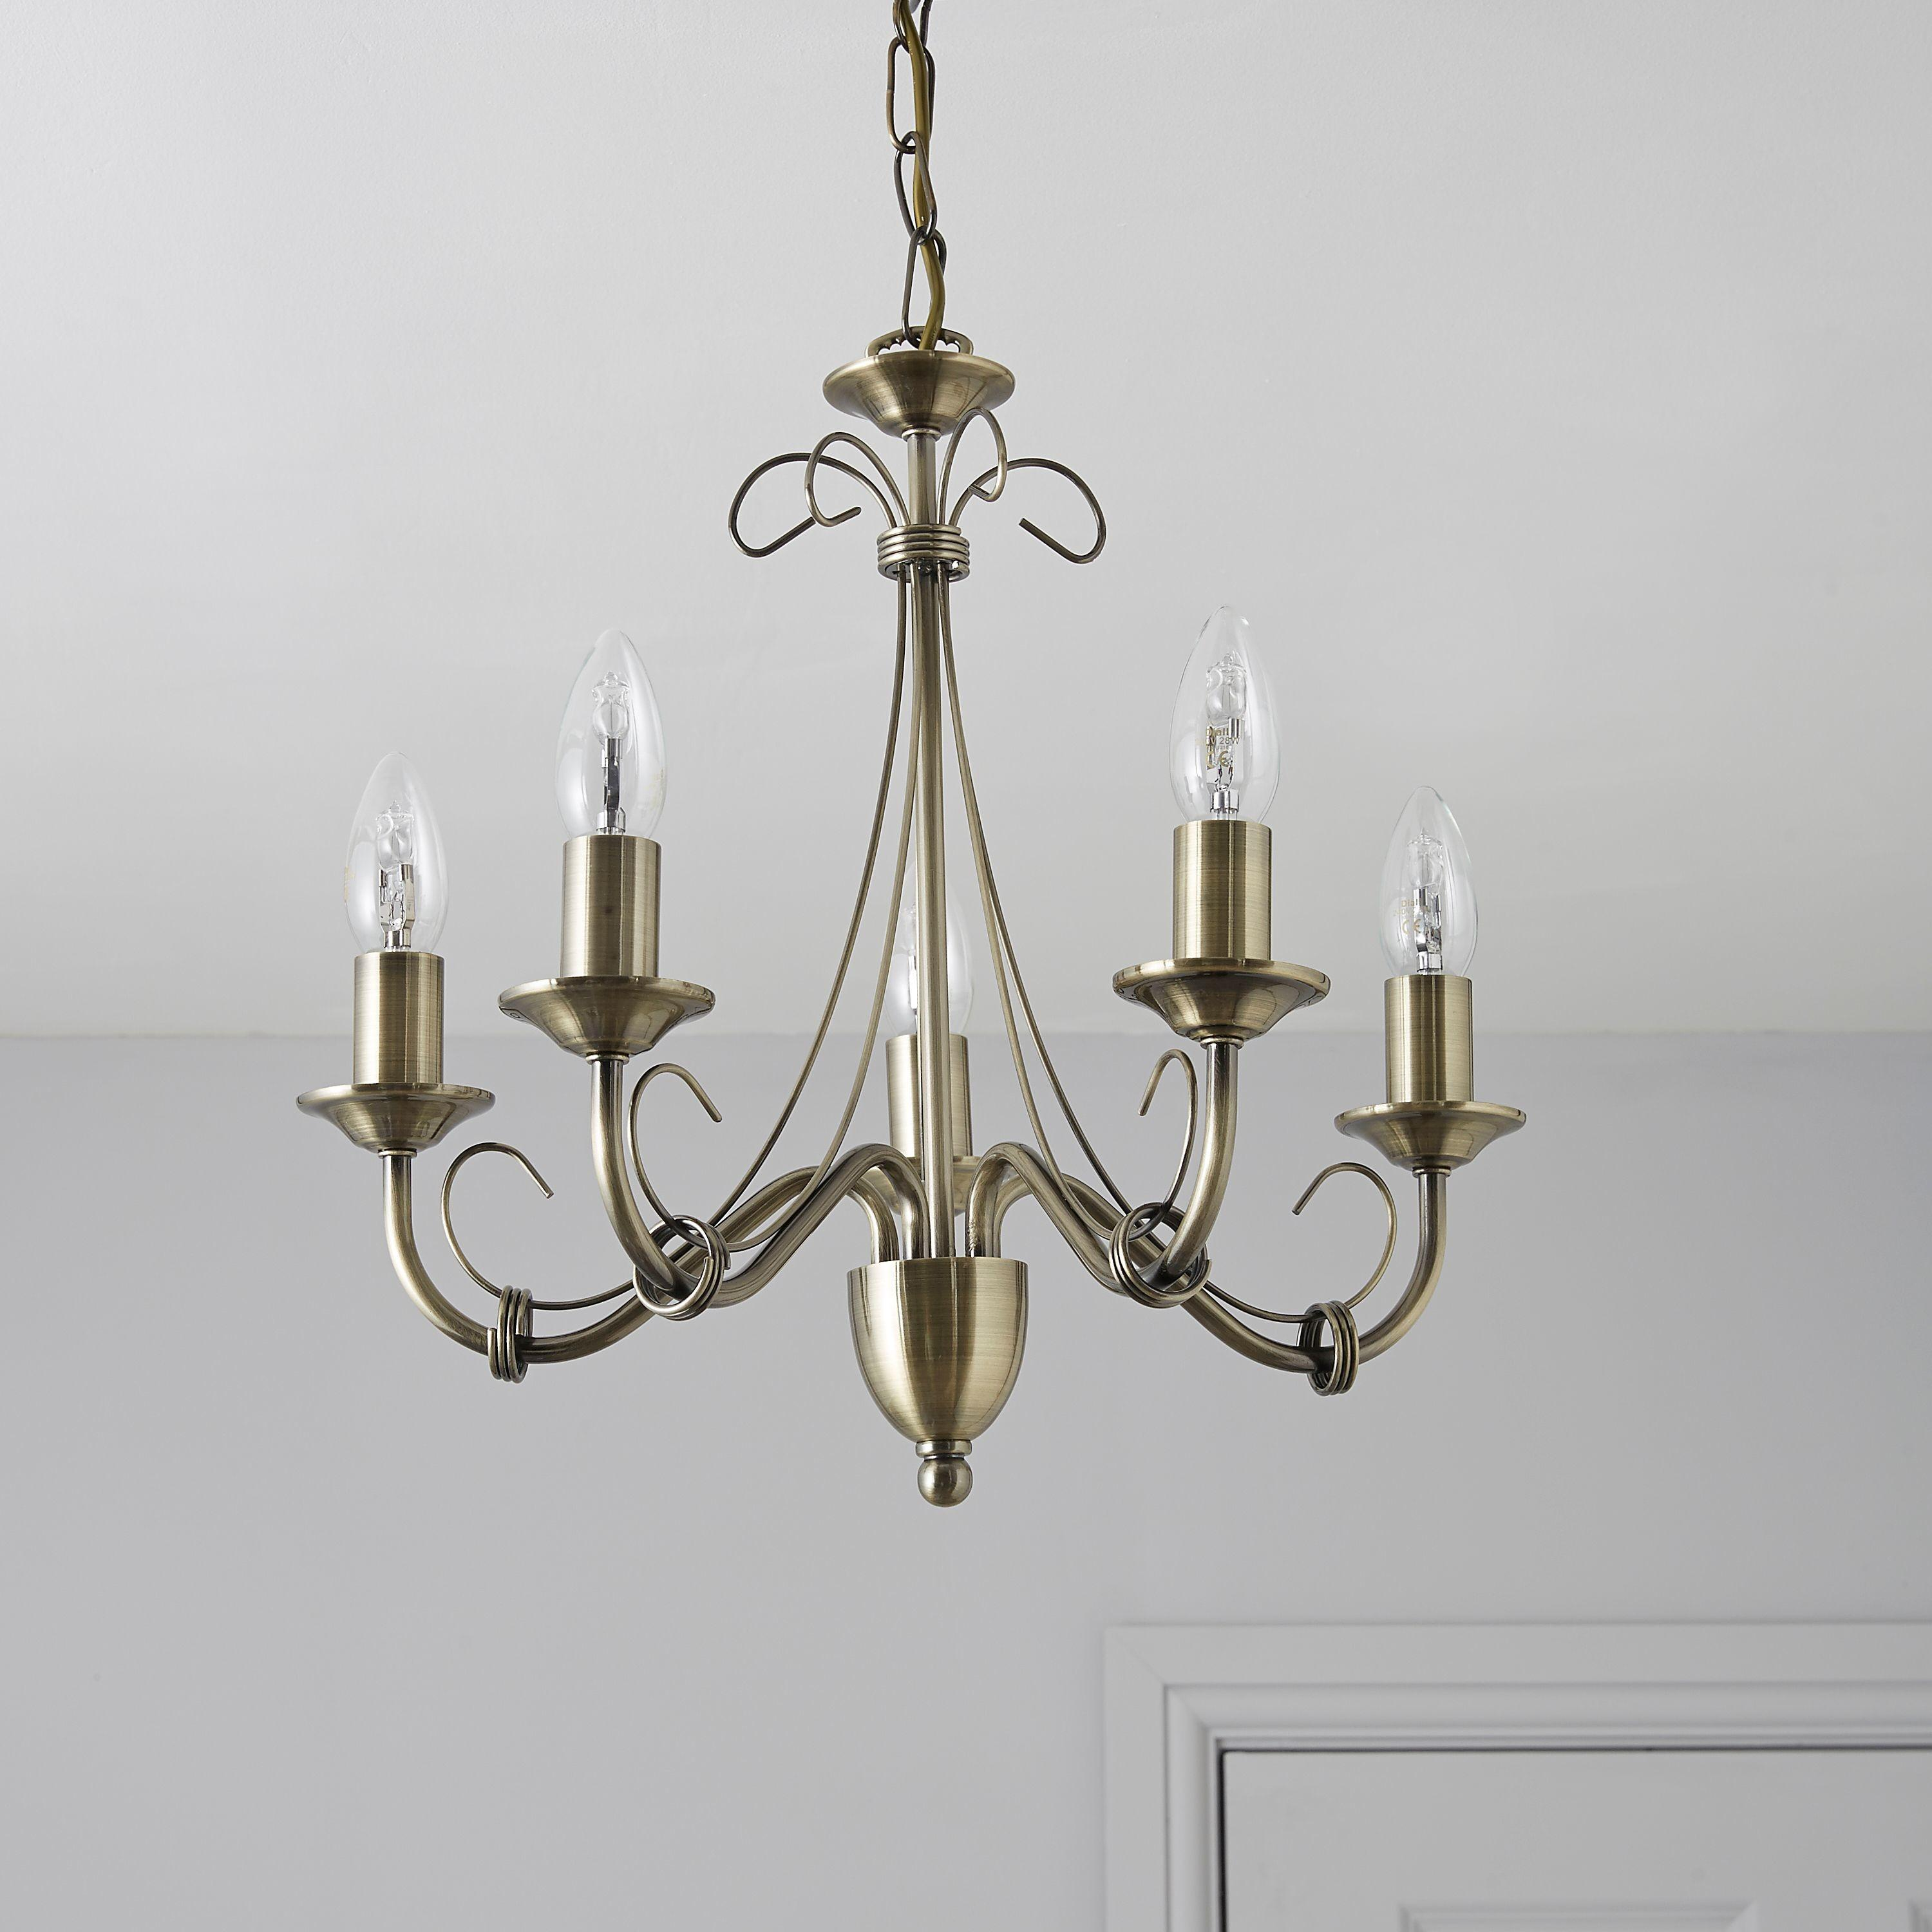 Priory Gold Lamp Pendant Ceiling Light Departments